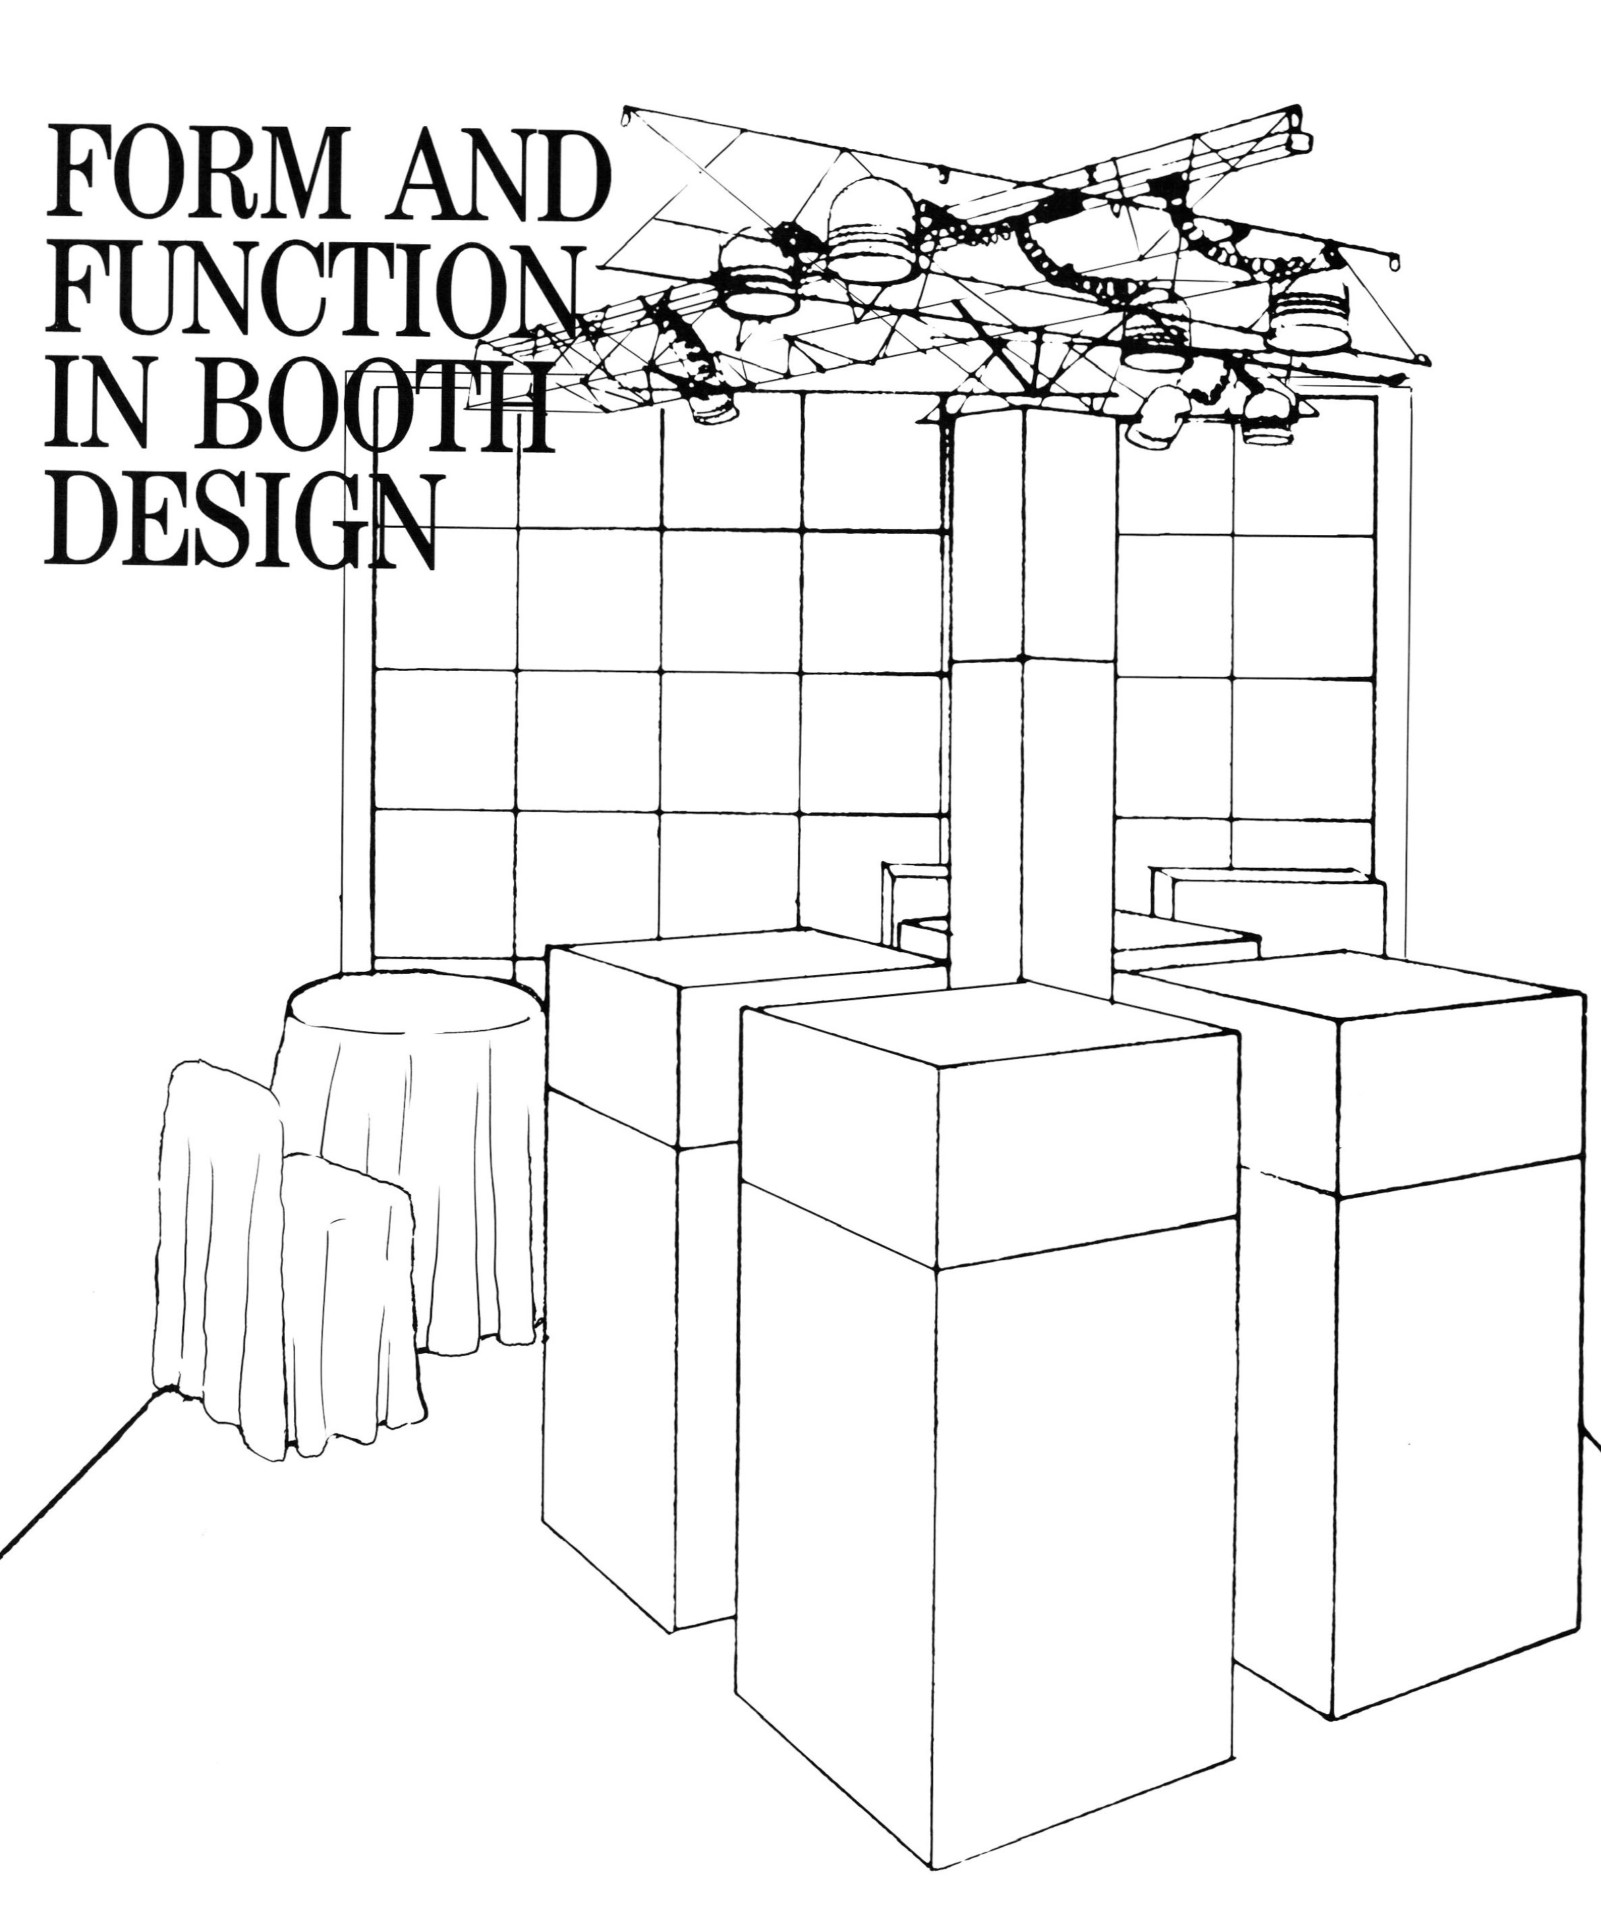 Form and Function in Booth Design